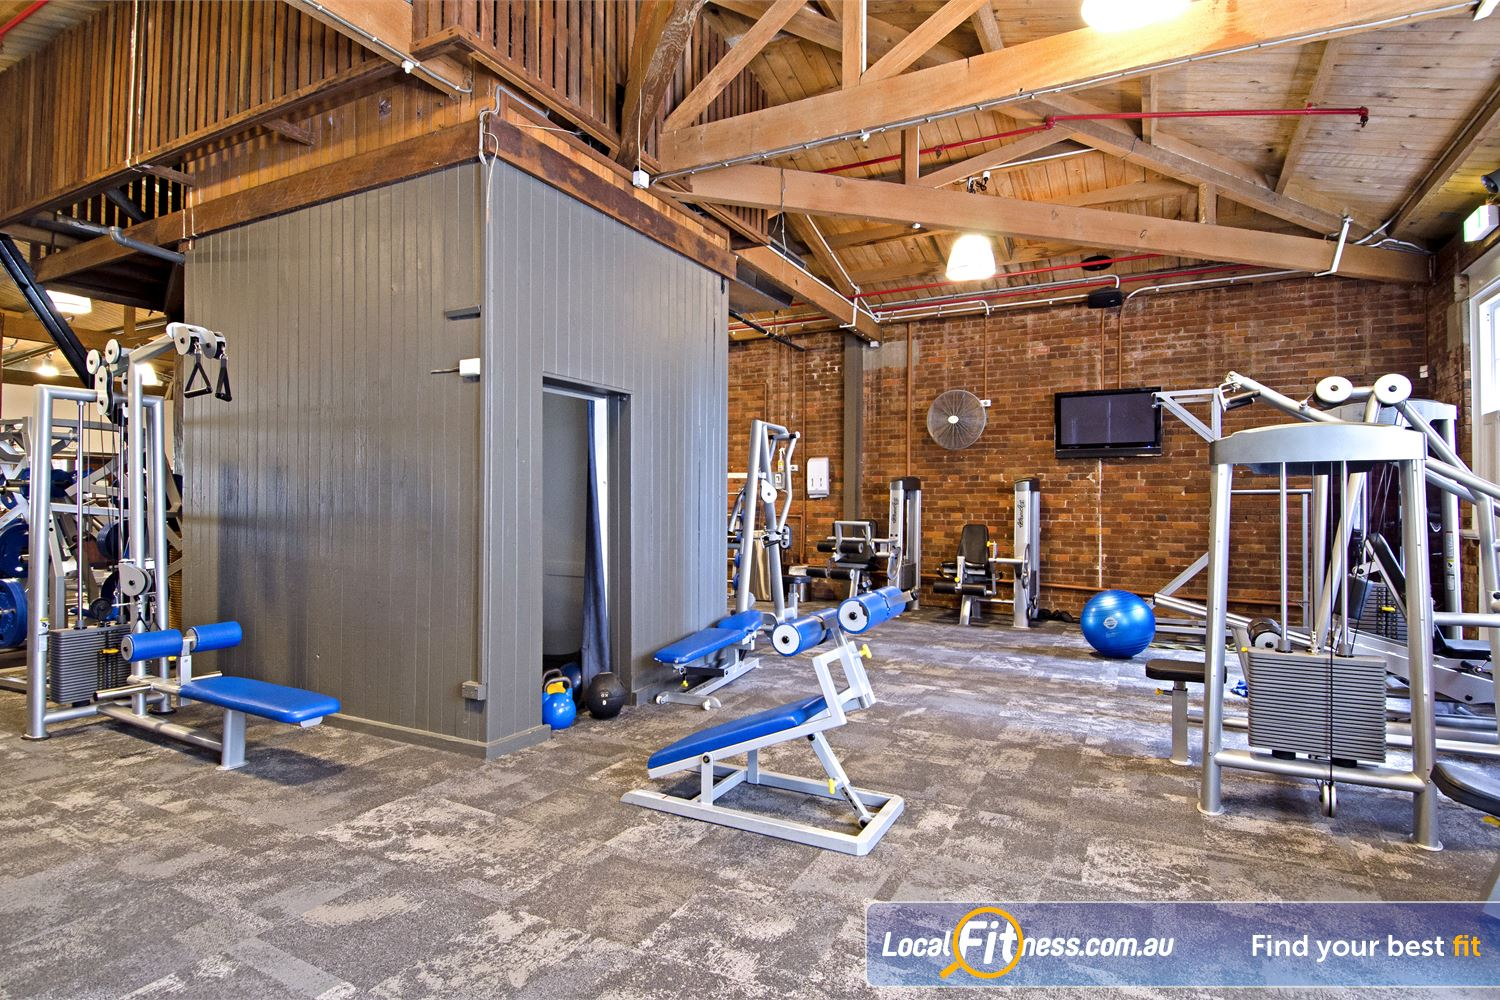 Goodlife Health Clubs Edward St Near Spring Hill Our spacious open-plan gym area in the heart of Brisbane.